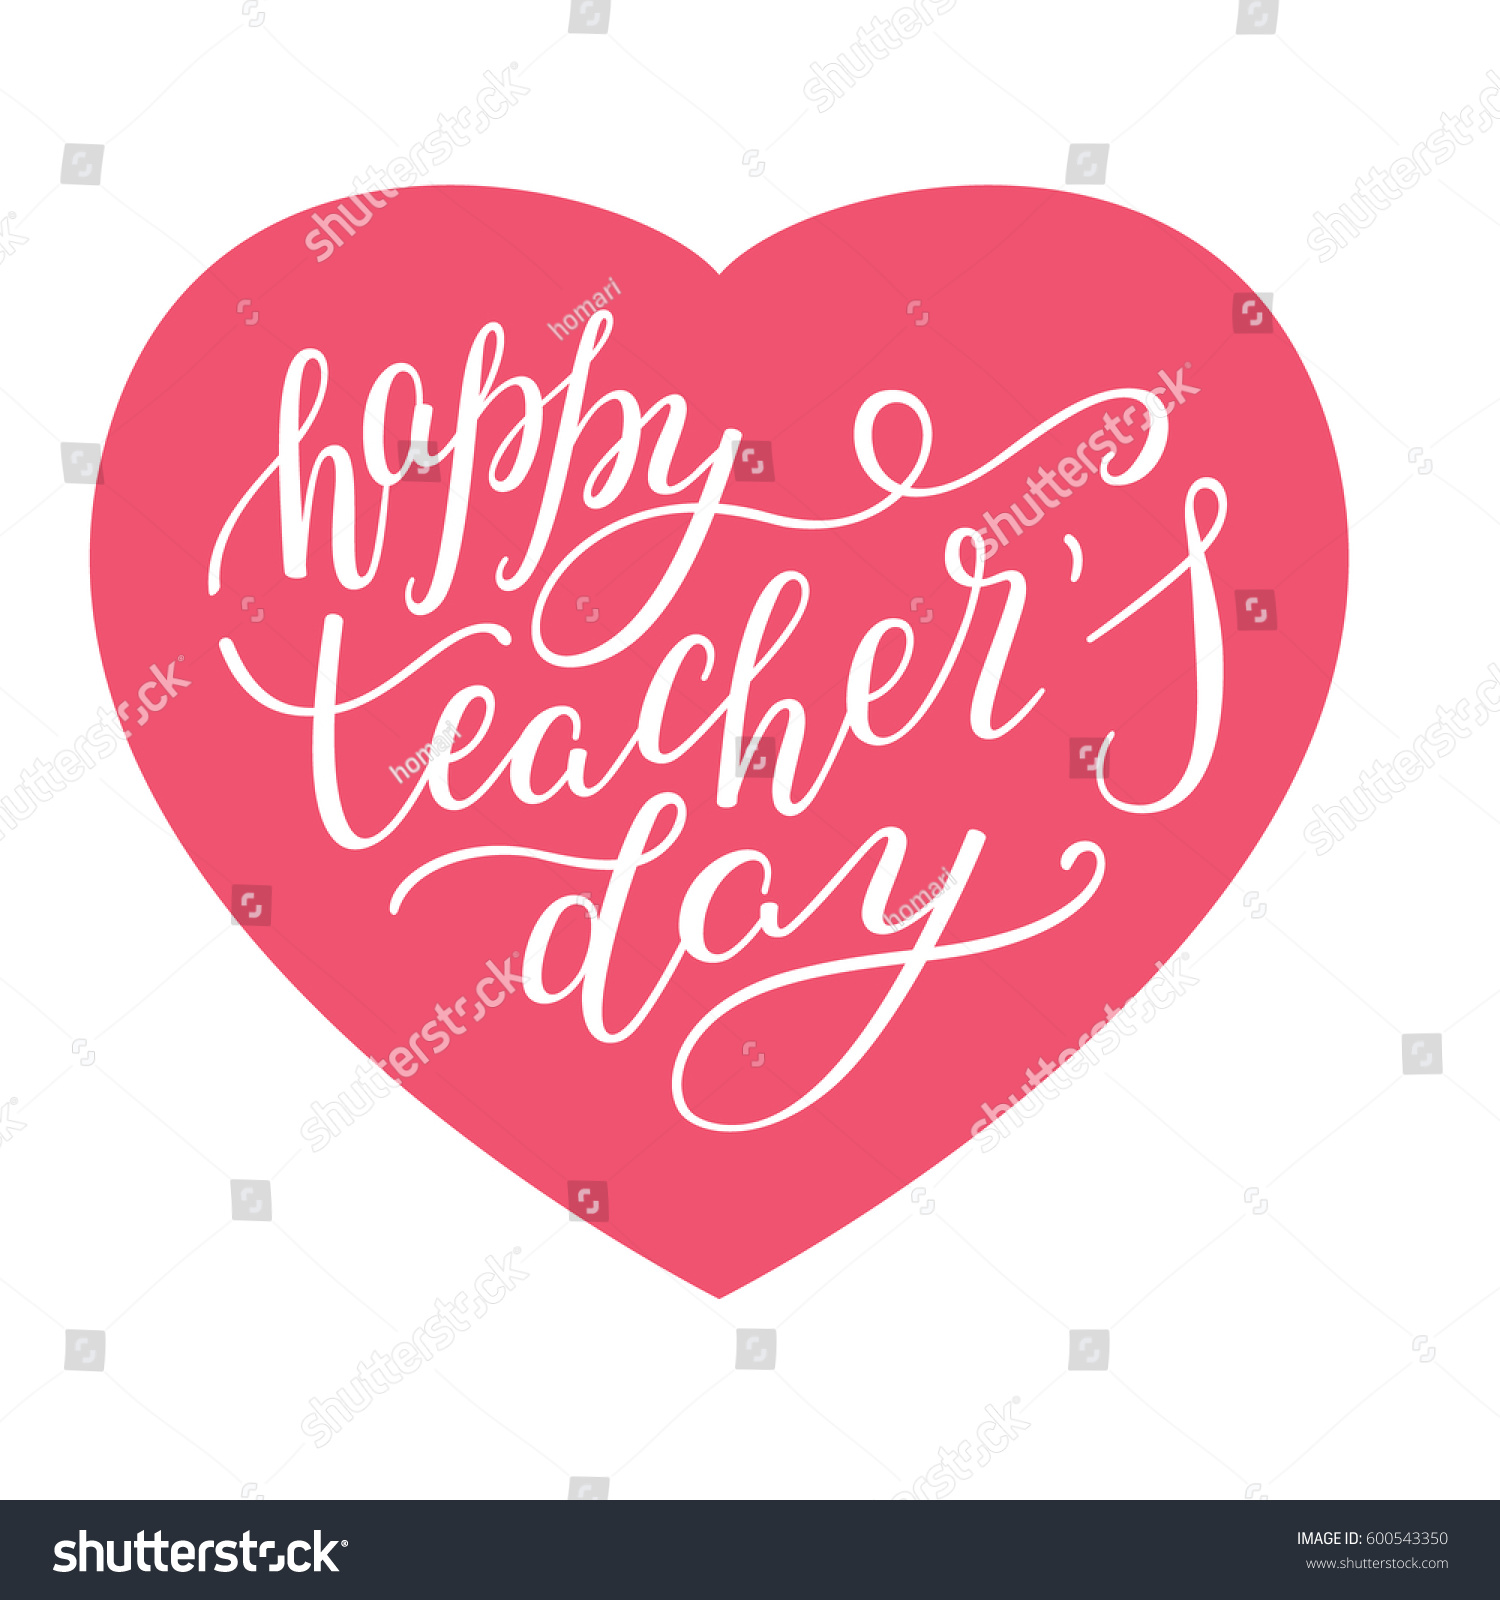 Happy teachers day hand lettering heart stock vector 600543350 happy teachers day hand lettering with heart template for greeting cards posters kristyandbryce Image collections